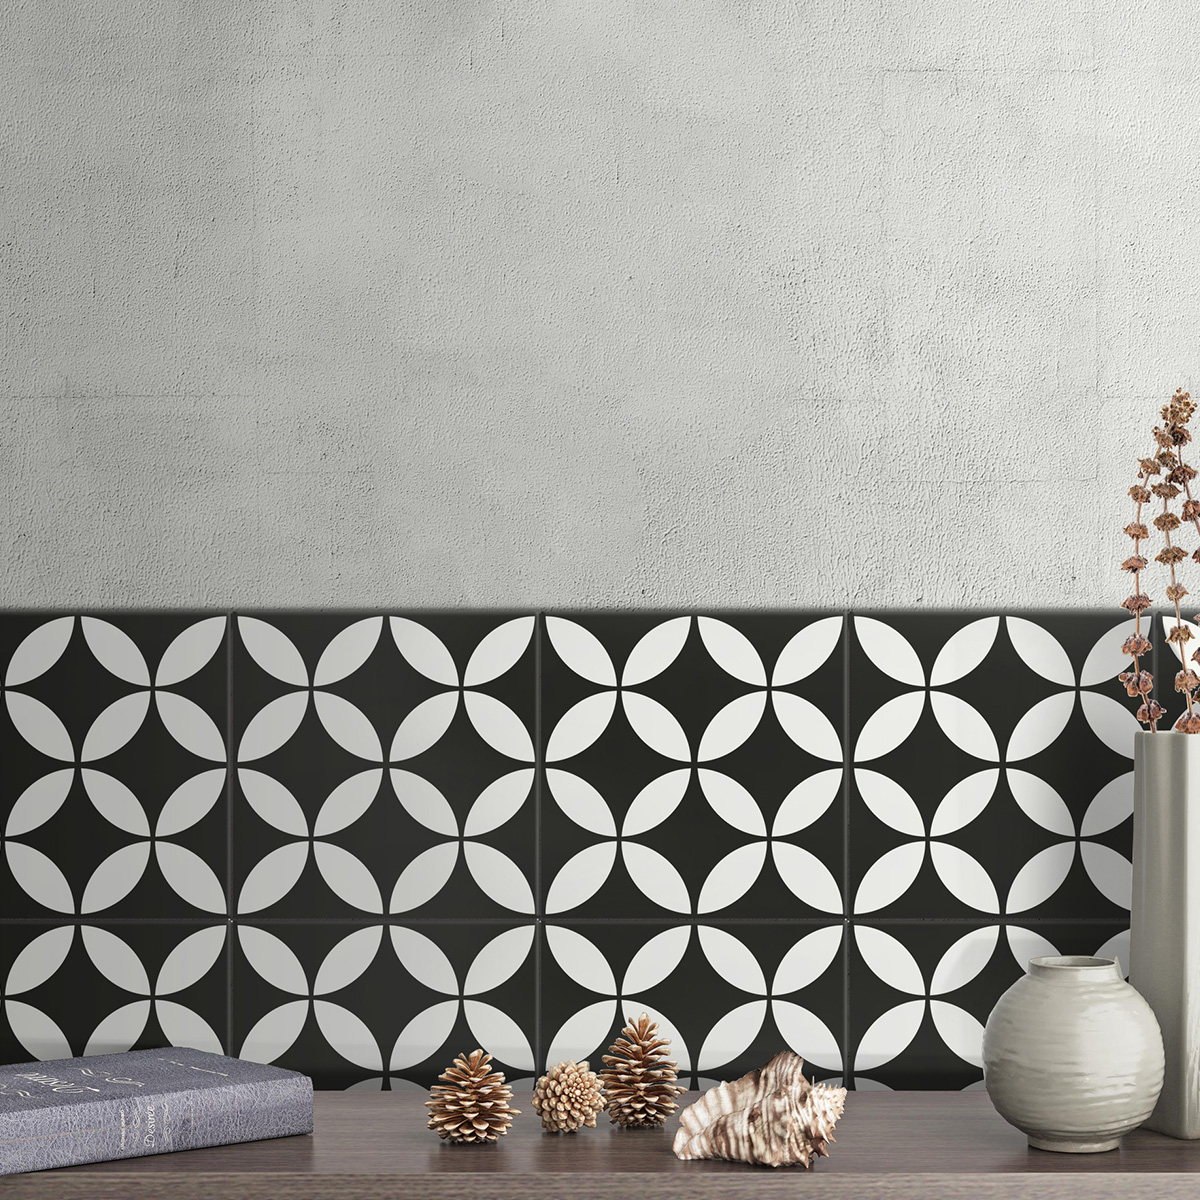 Picasso Star Black Patterned Tile - Stone3 Brisbane